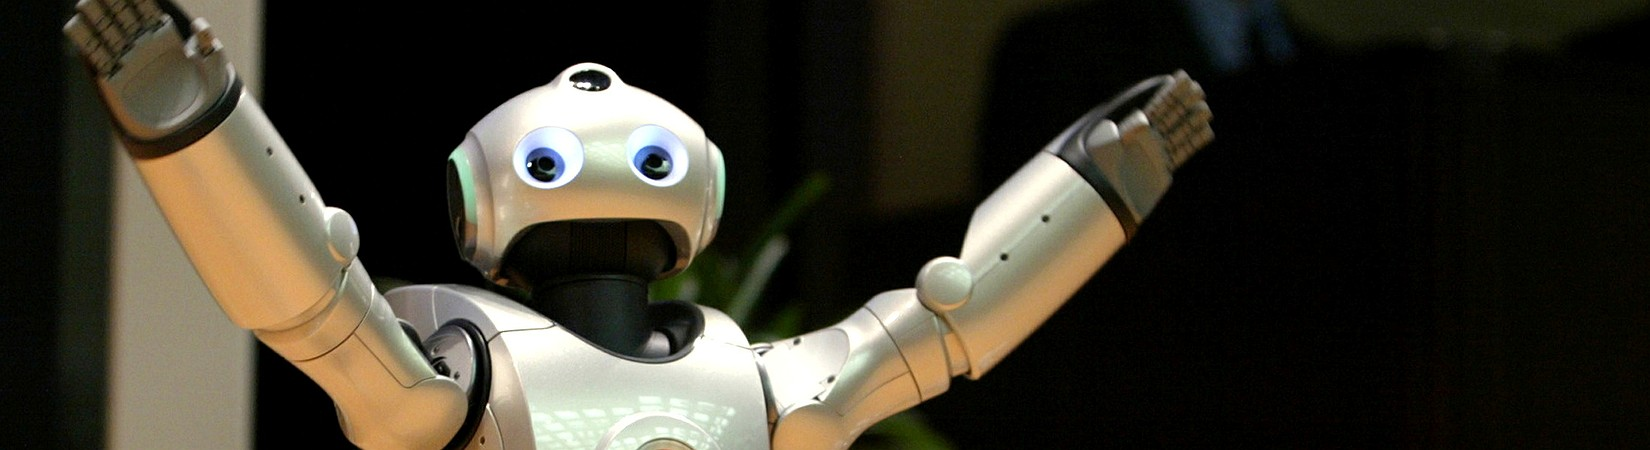 'Robots could replace fund managers, Google could be industry leader'